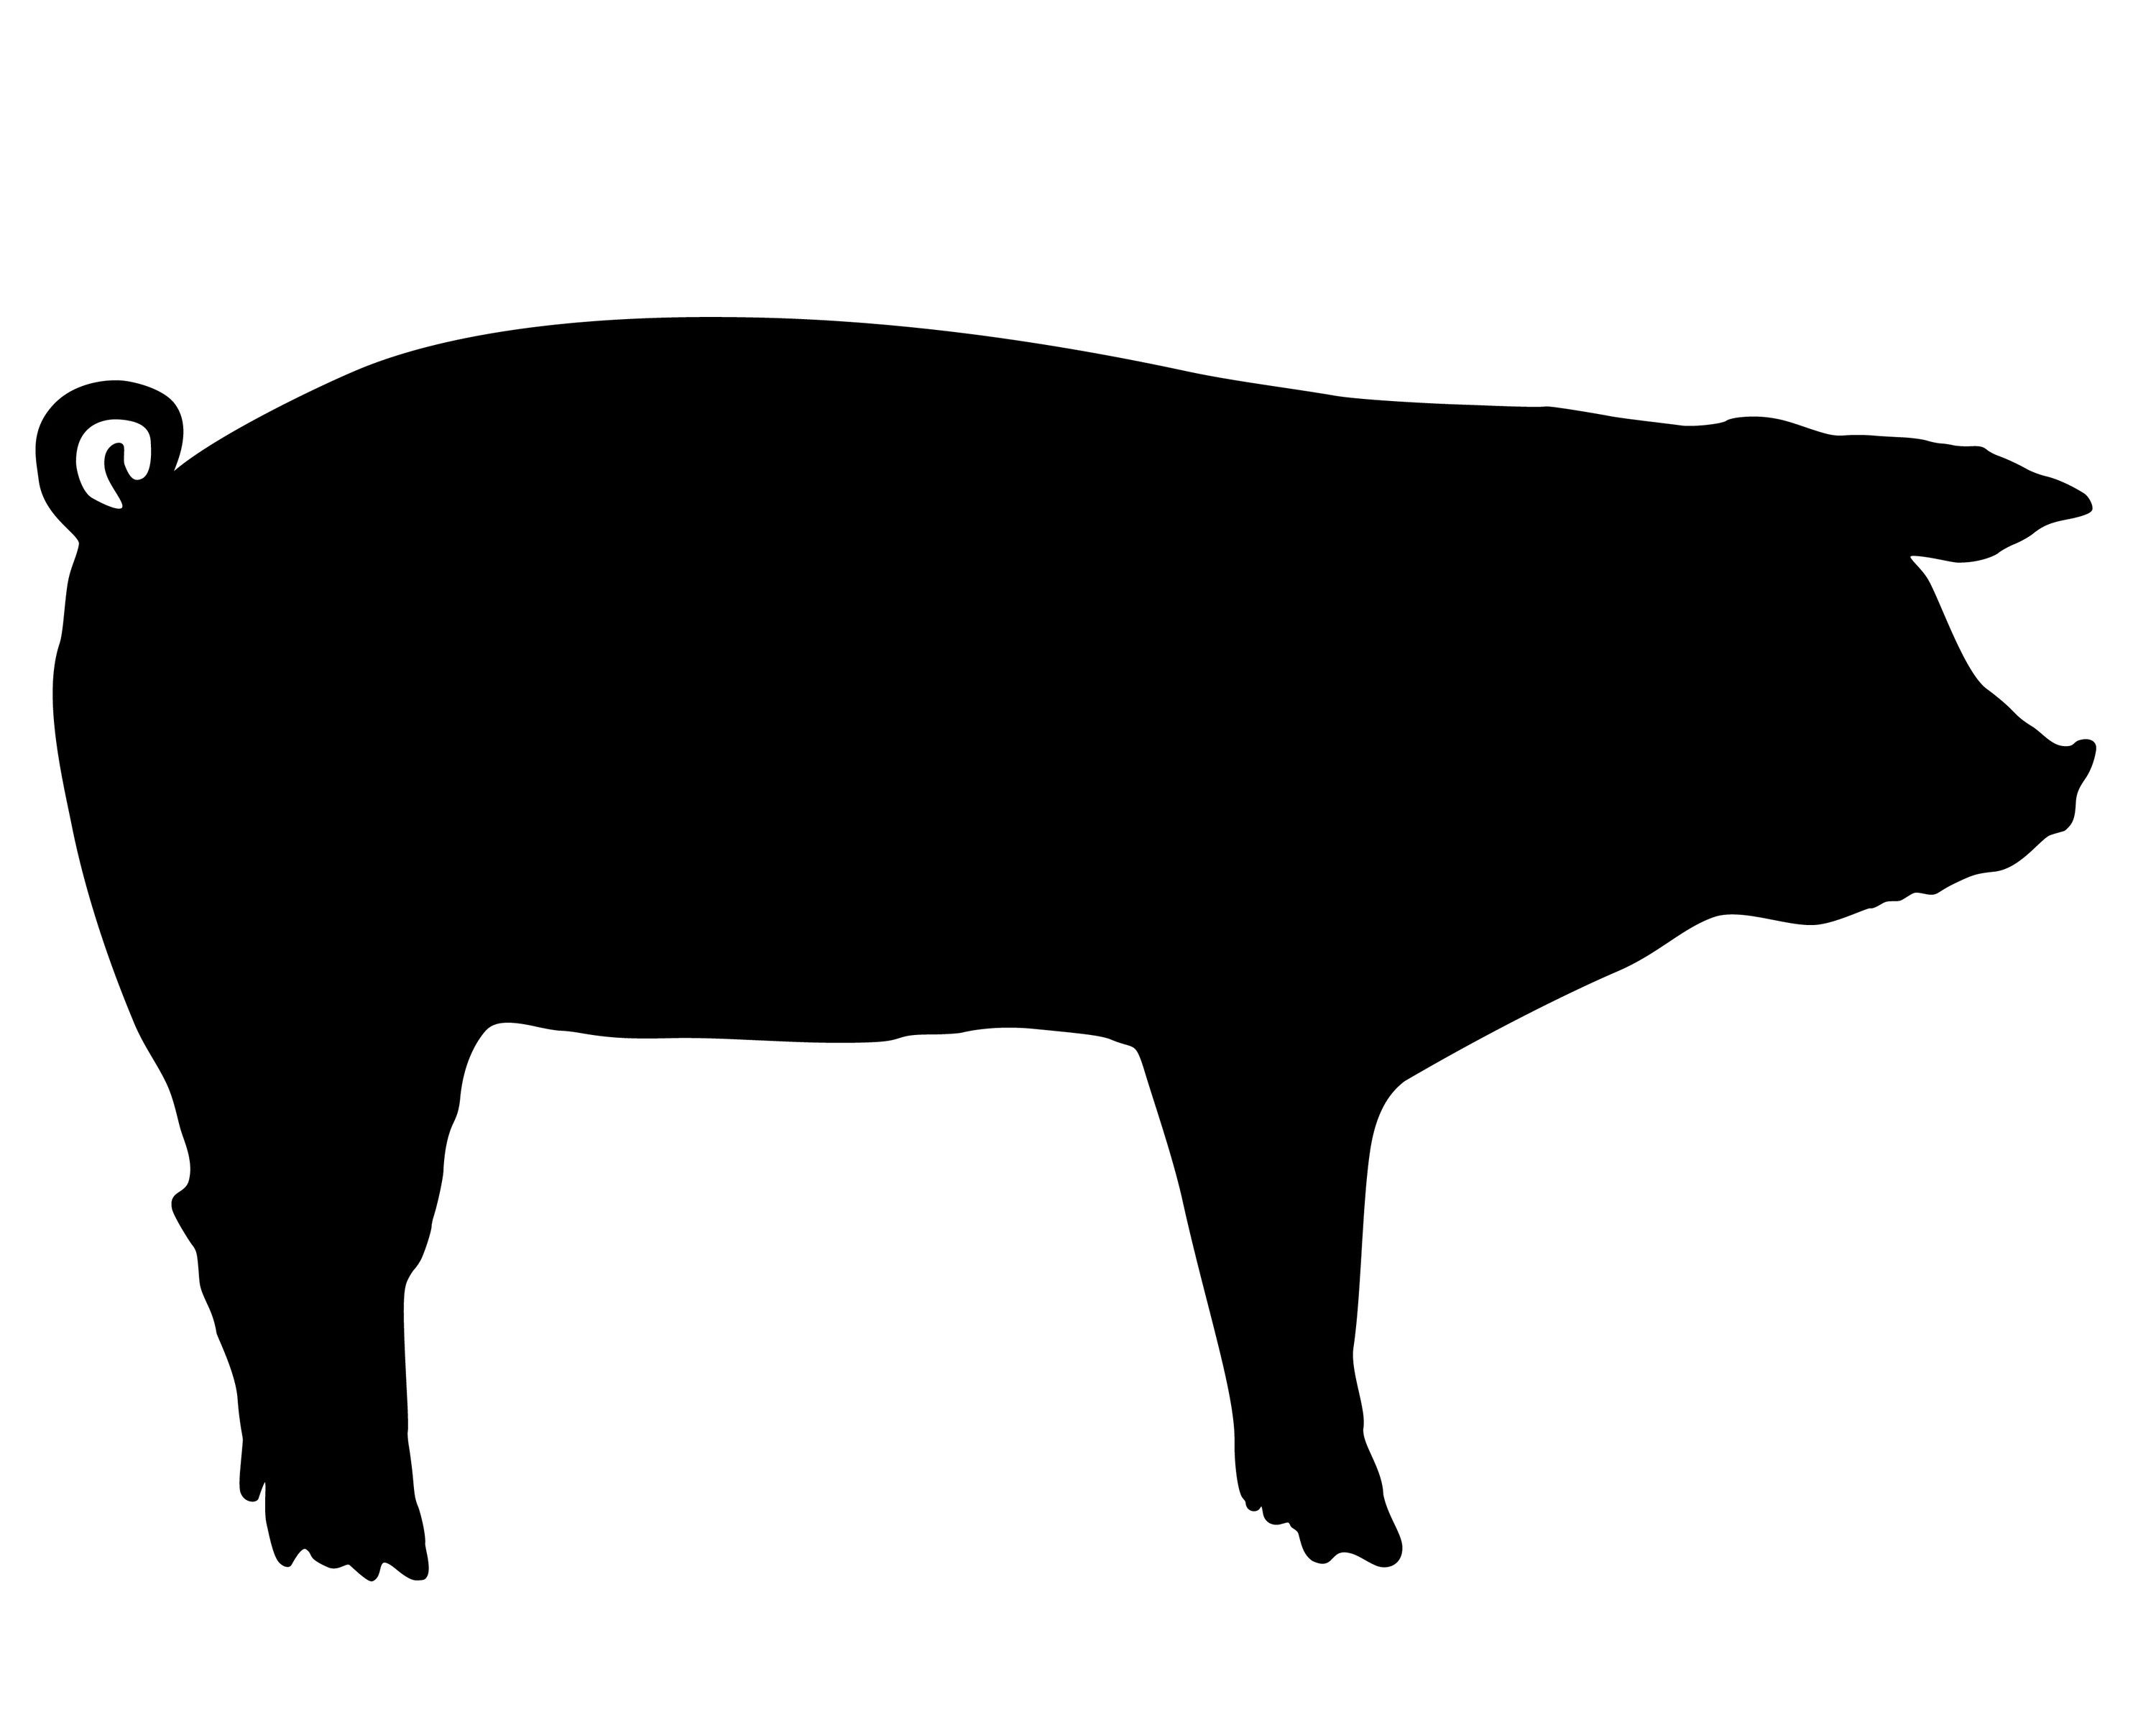 Pig silhouette clipart